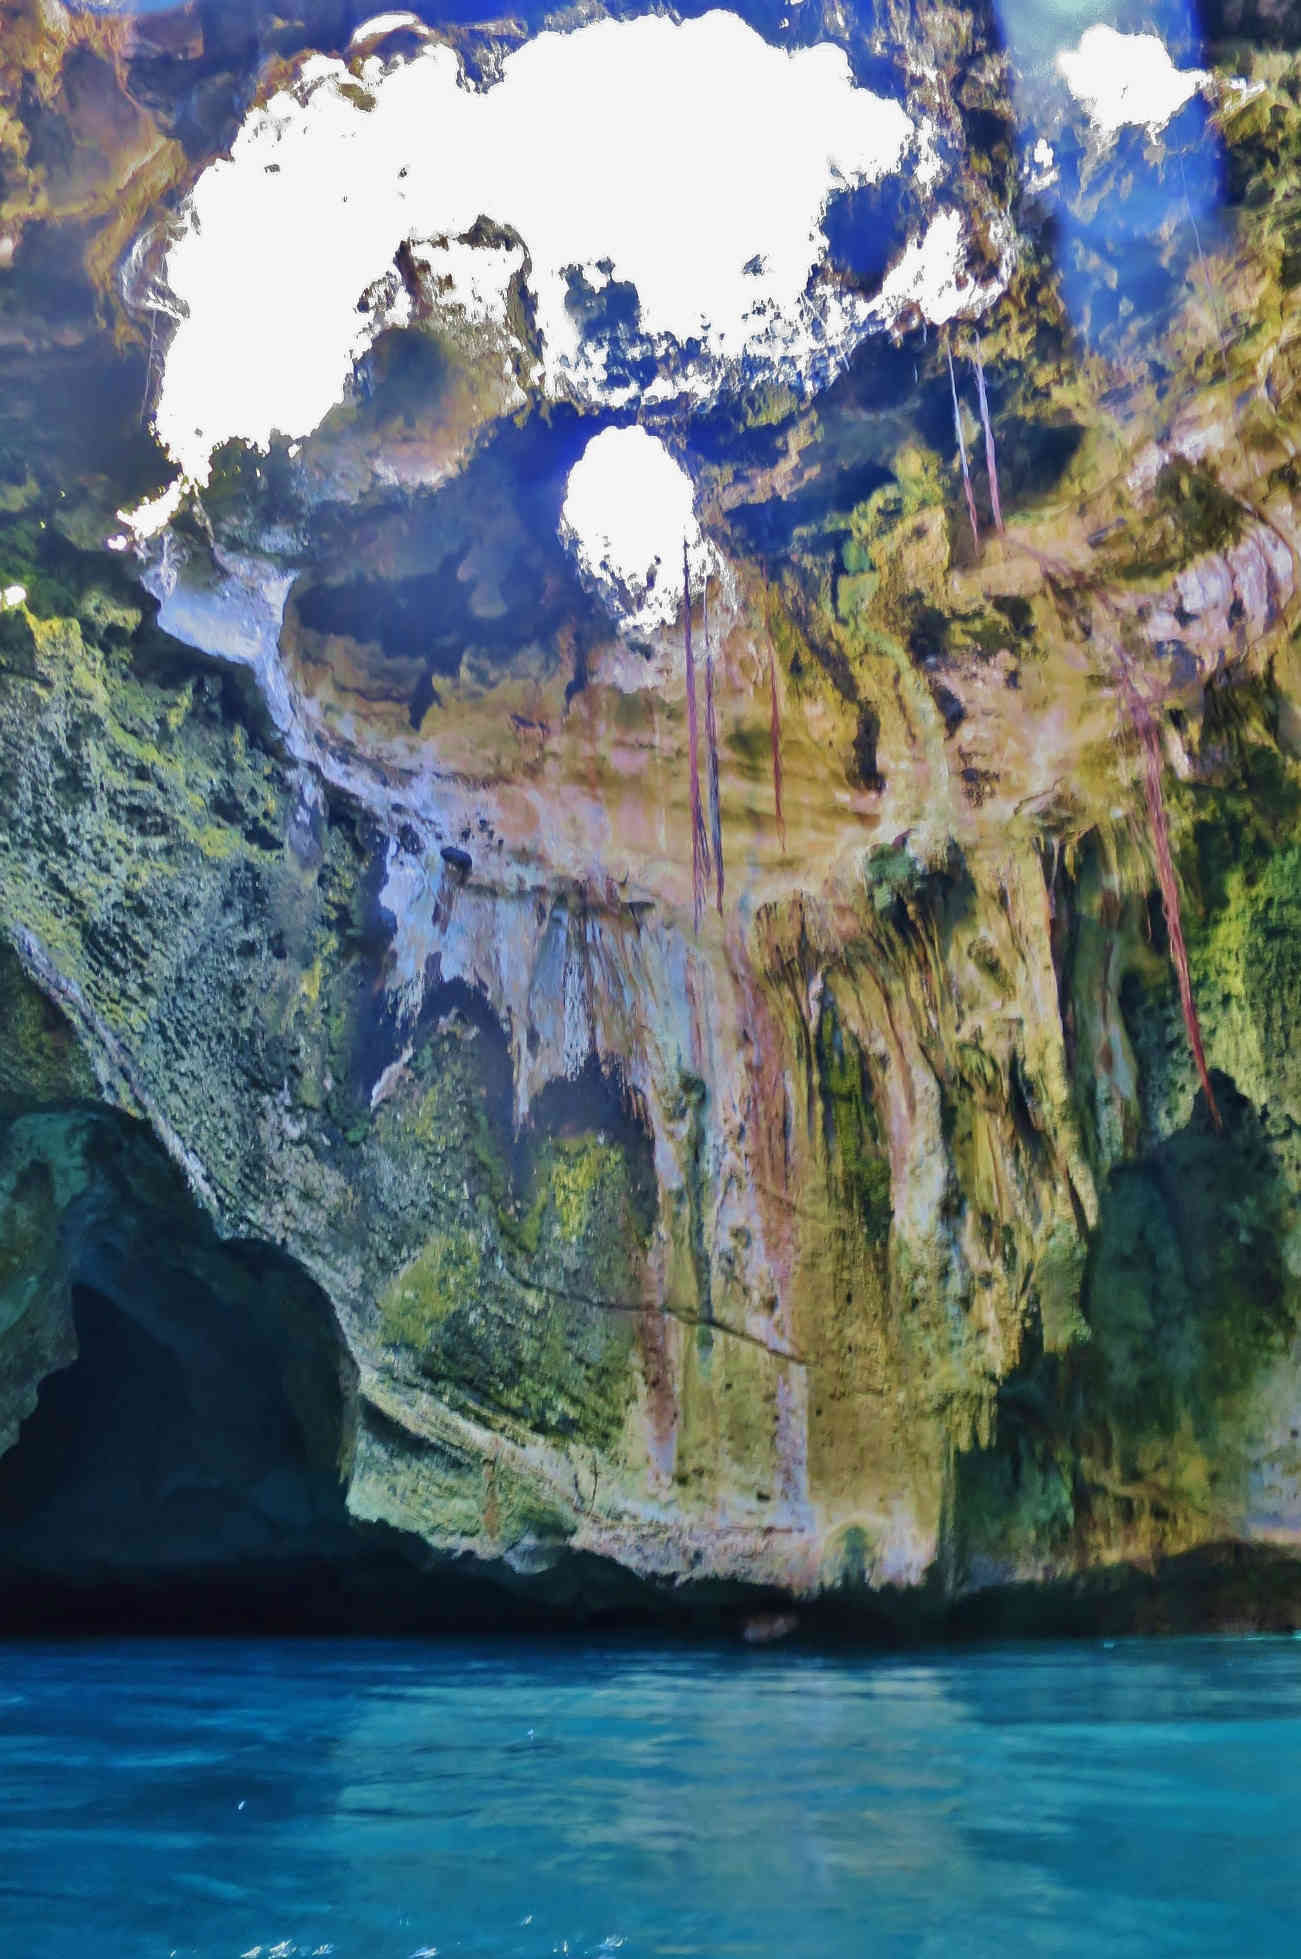 Magical Thunderball Cave once served as a set for a James Bond movie and is a great adventure to explore